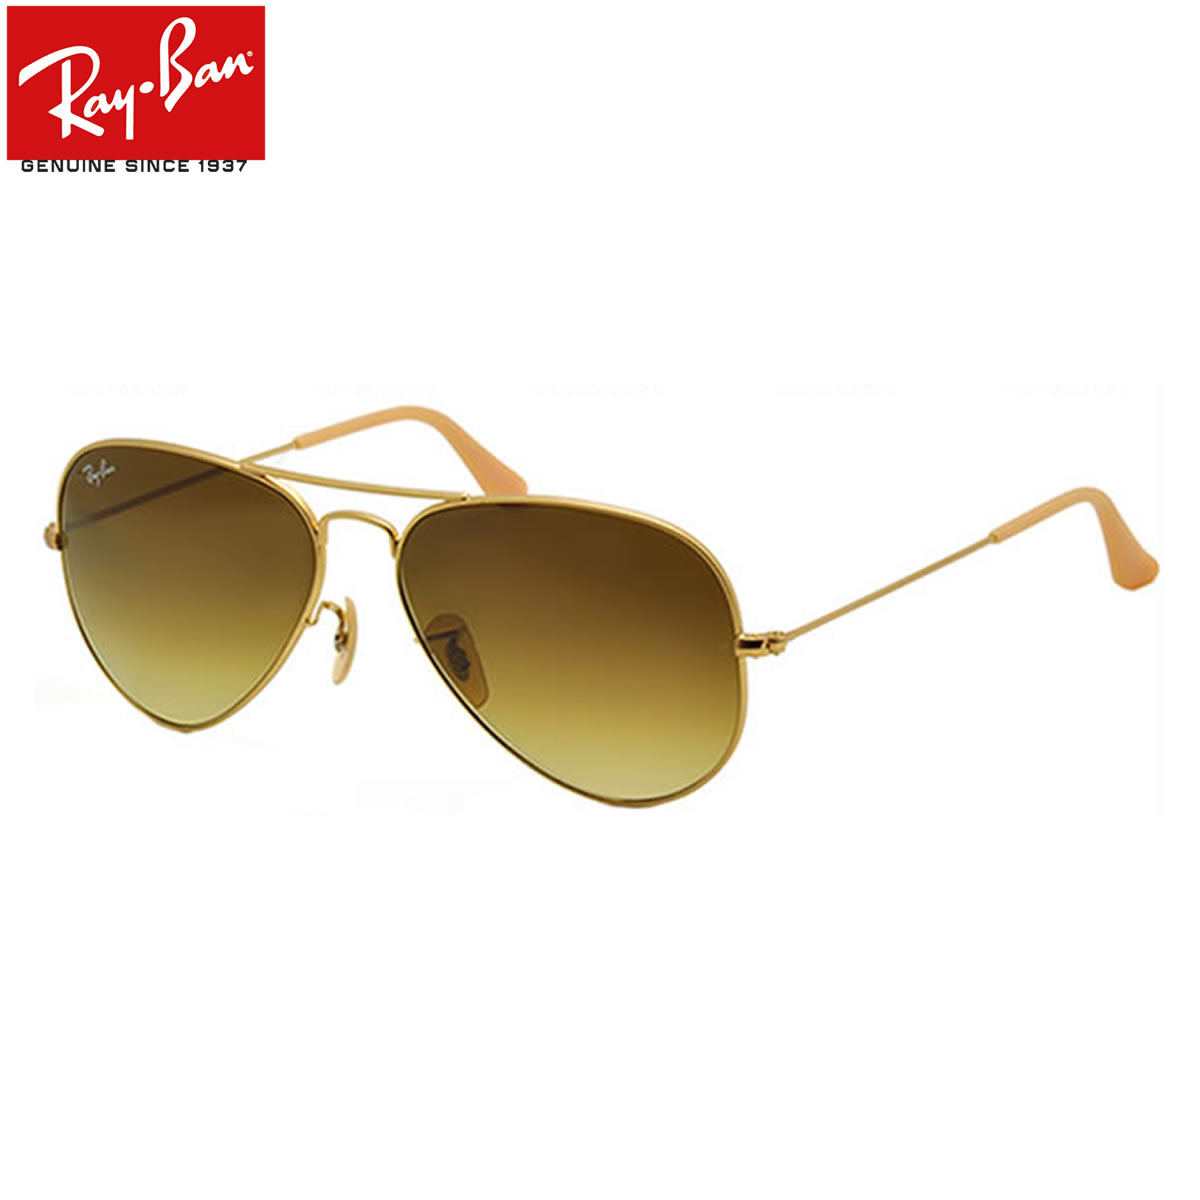 Ray Ban Rb 3025 Aviator 112 85 - Psychopraticienne Bordeaux 67993a1273